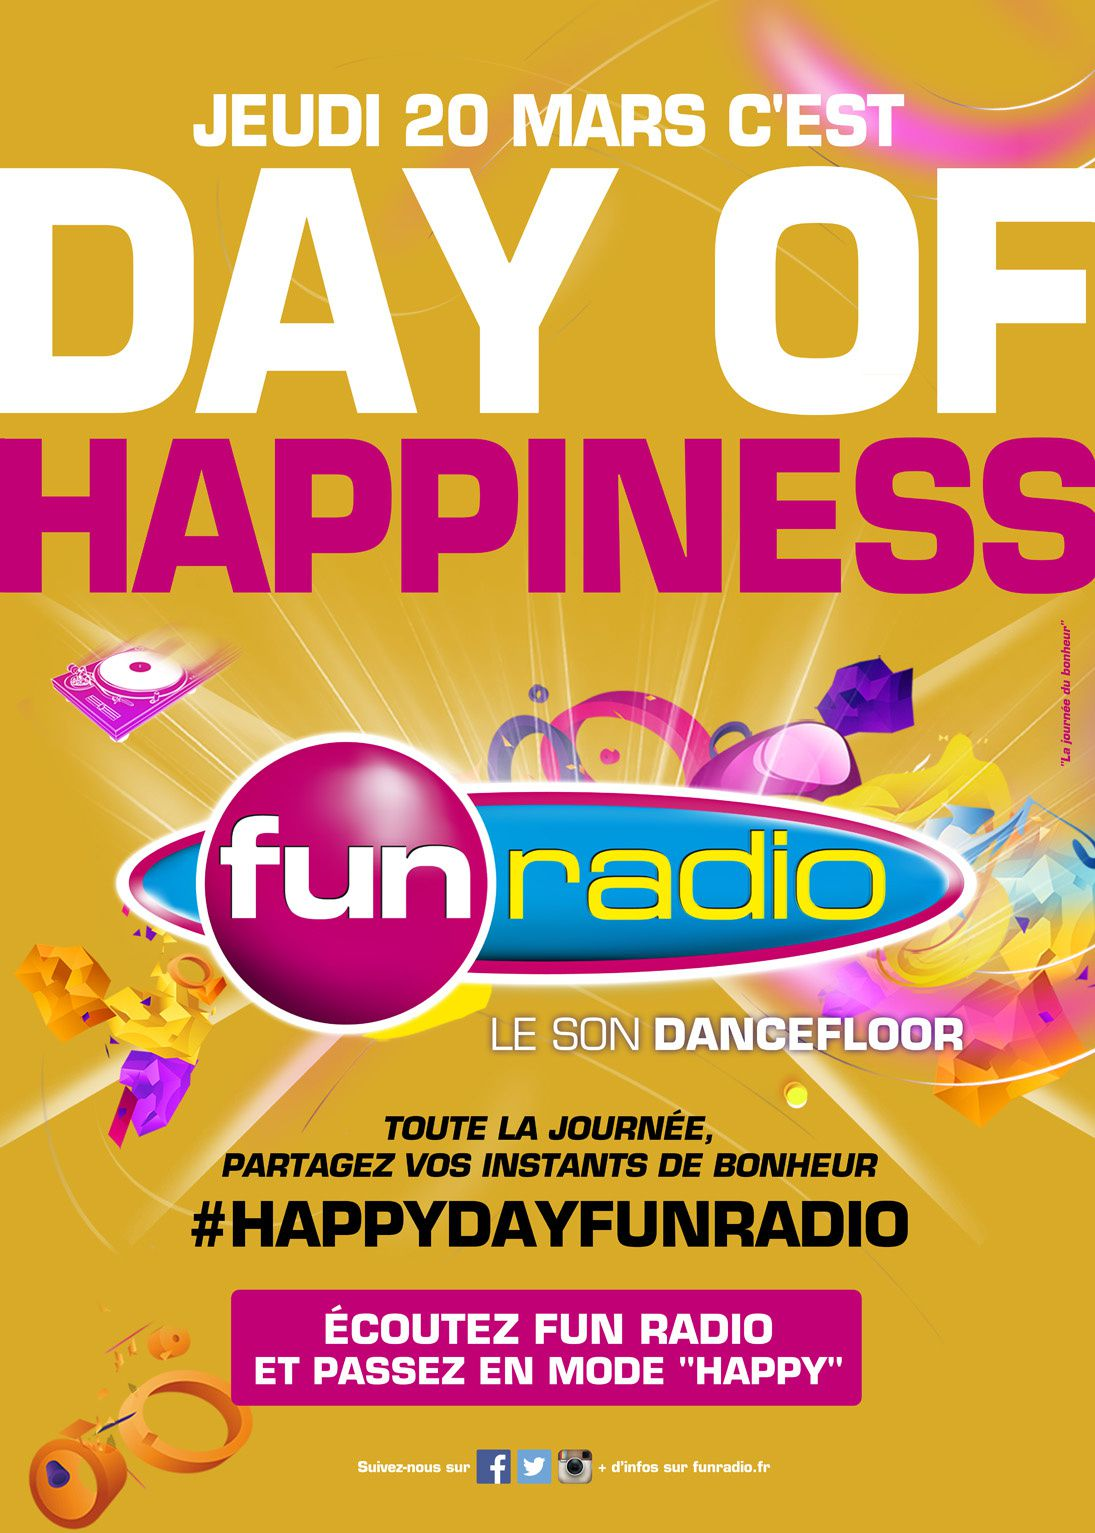 Fun radio fête la Journée Internationale du Bonheur #HAPPYDAYFUNRADIO